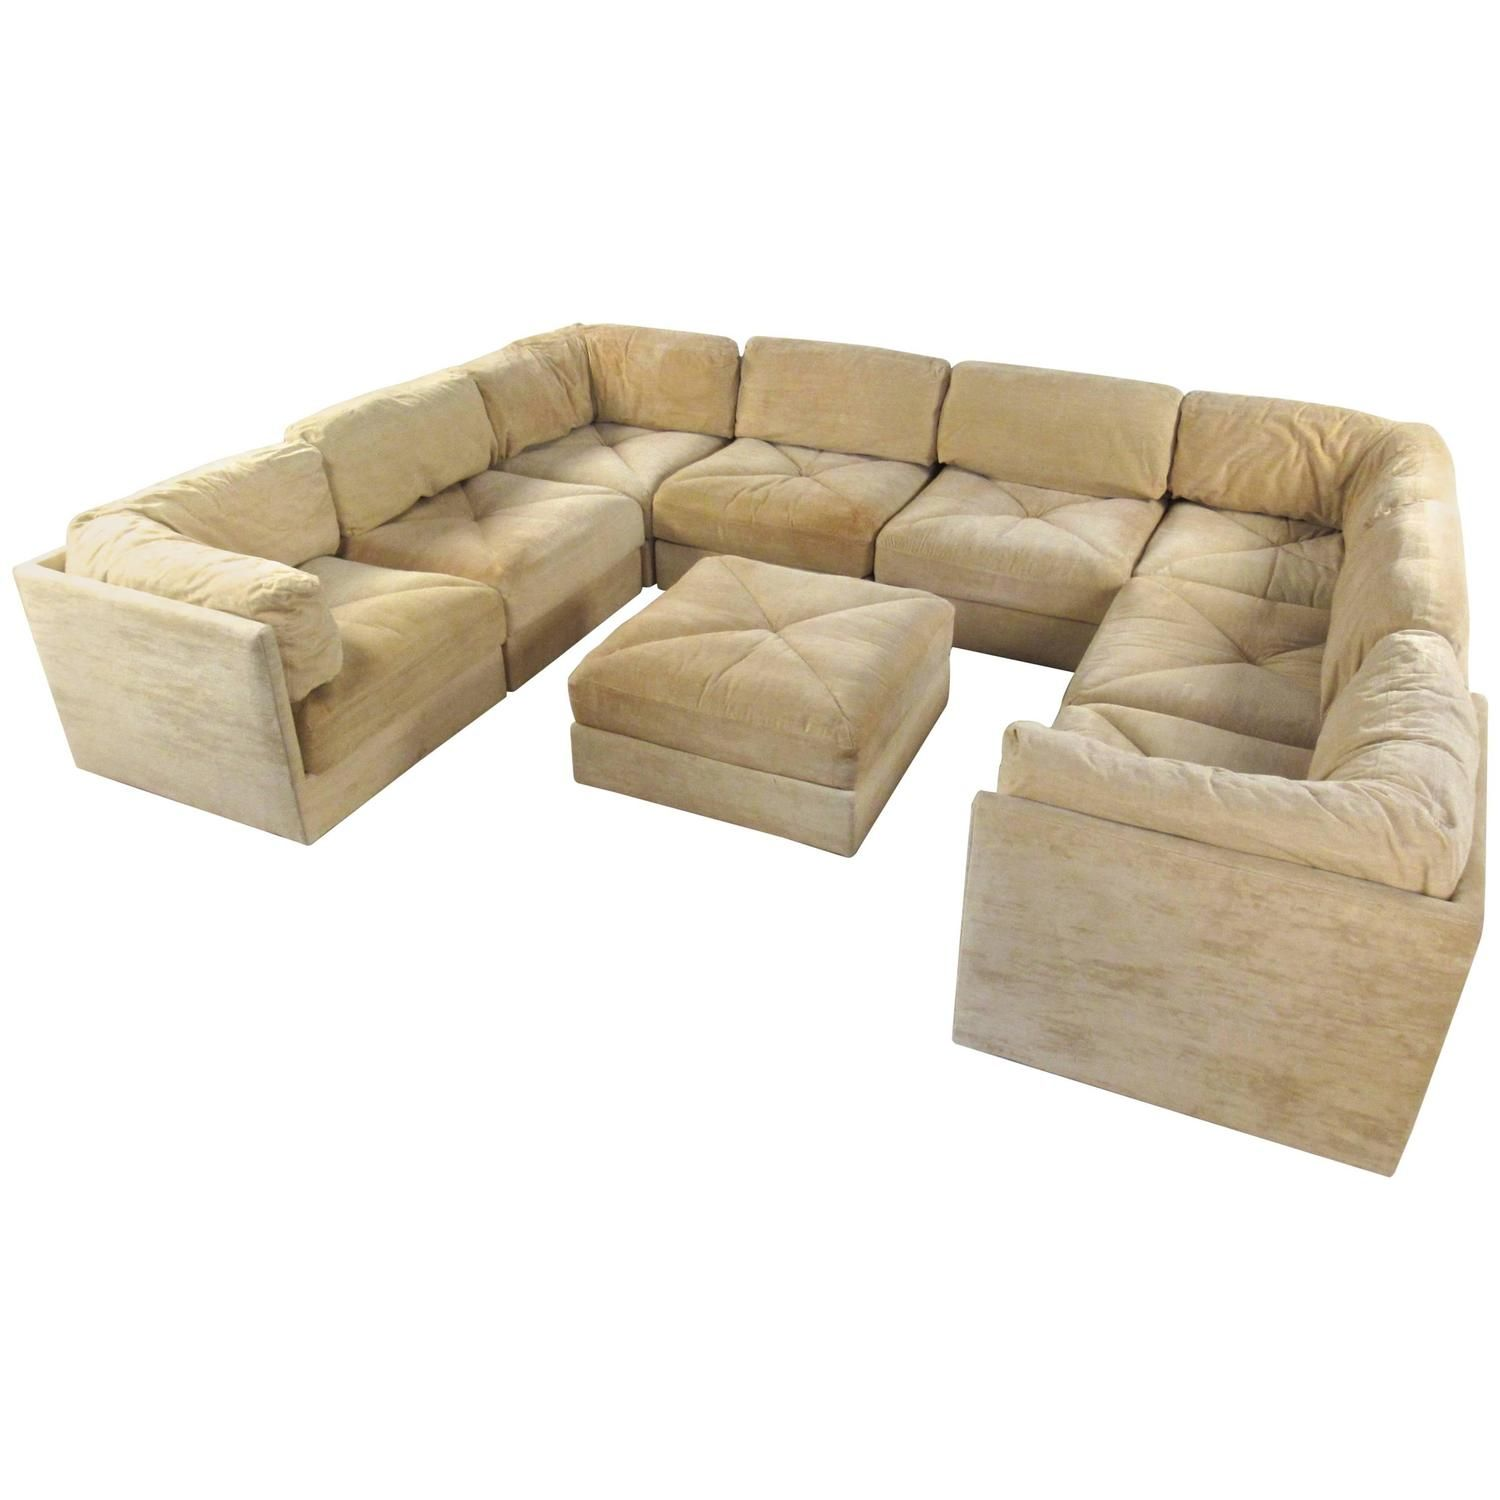 Large Sectional Sofa With Ottoman Moroccan Set Uk Selig Mid Century